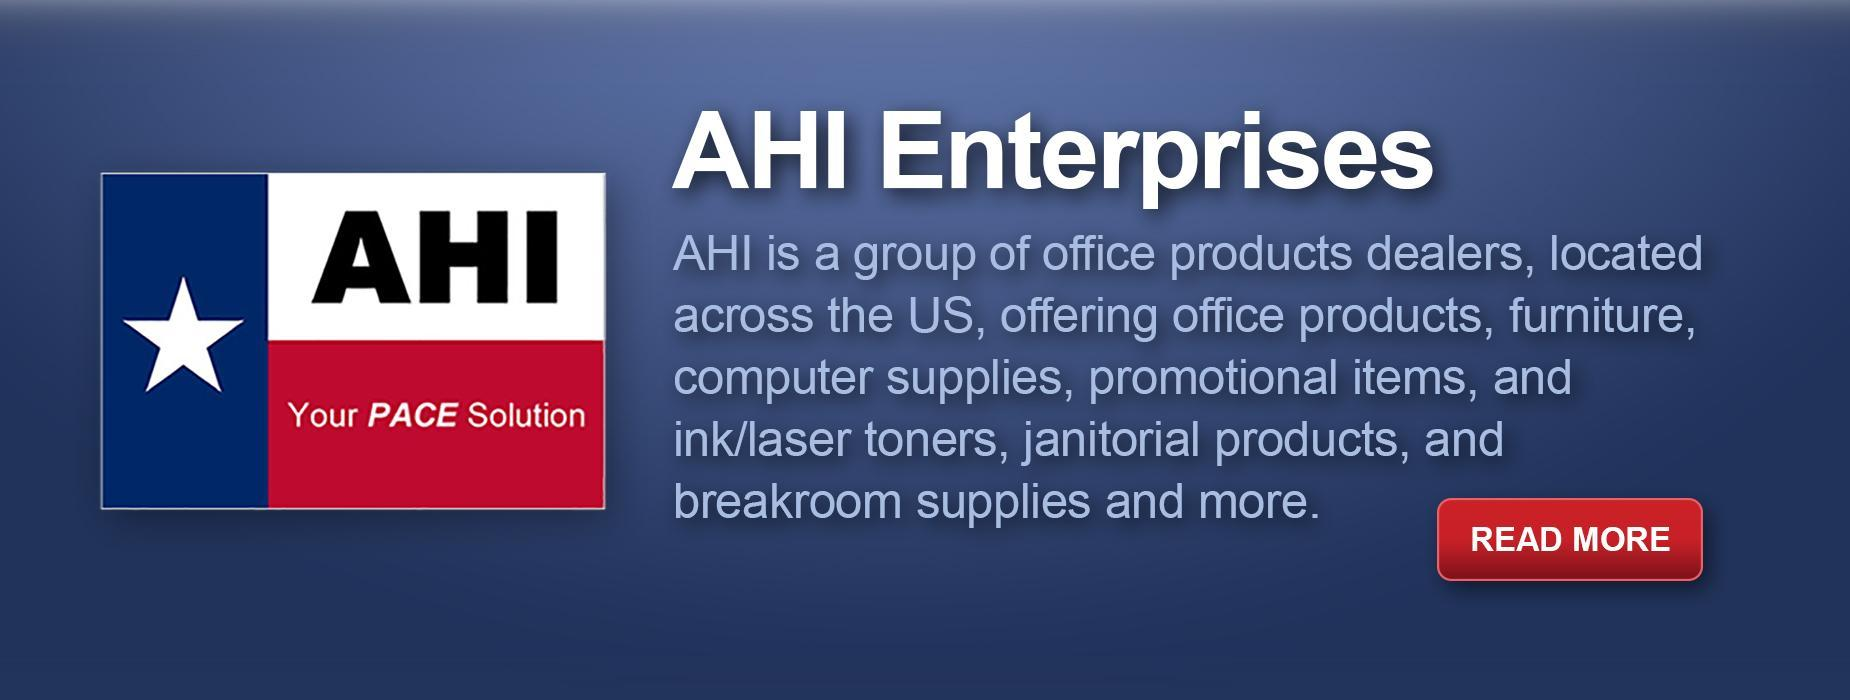 AHI Enterprises, read more